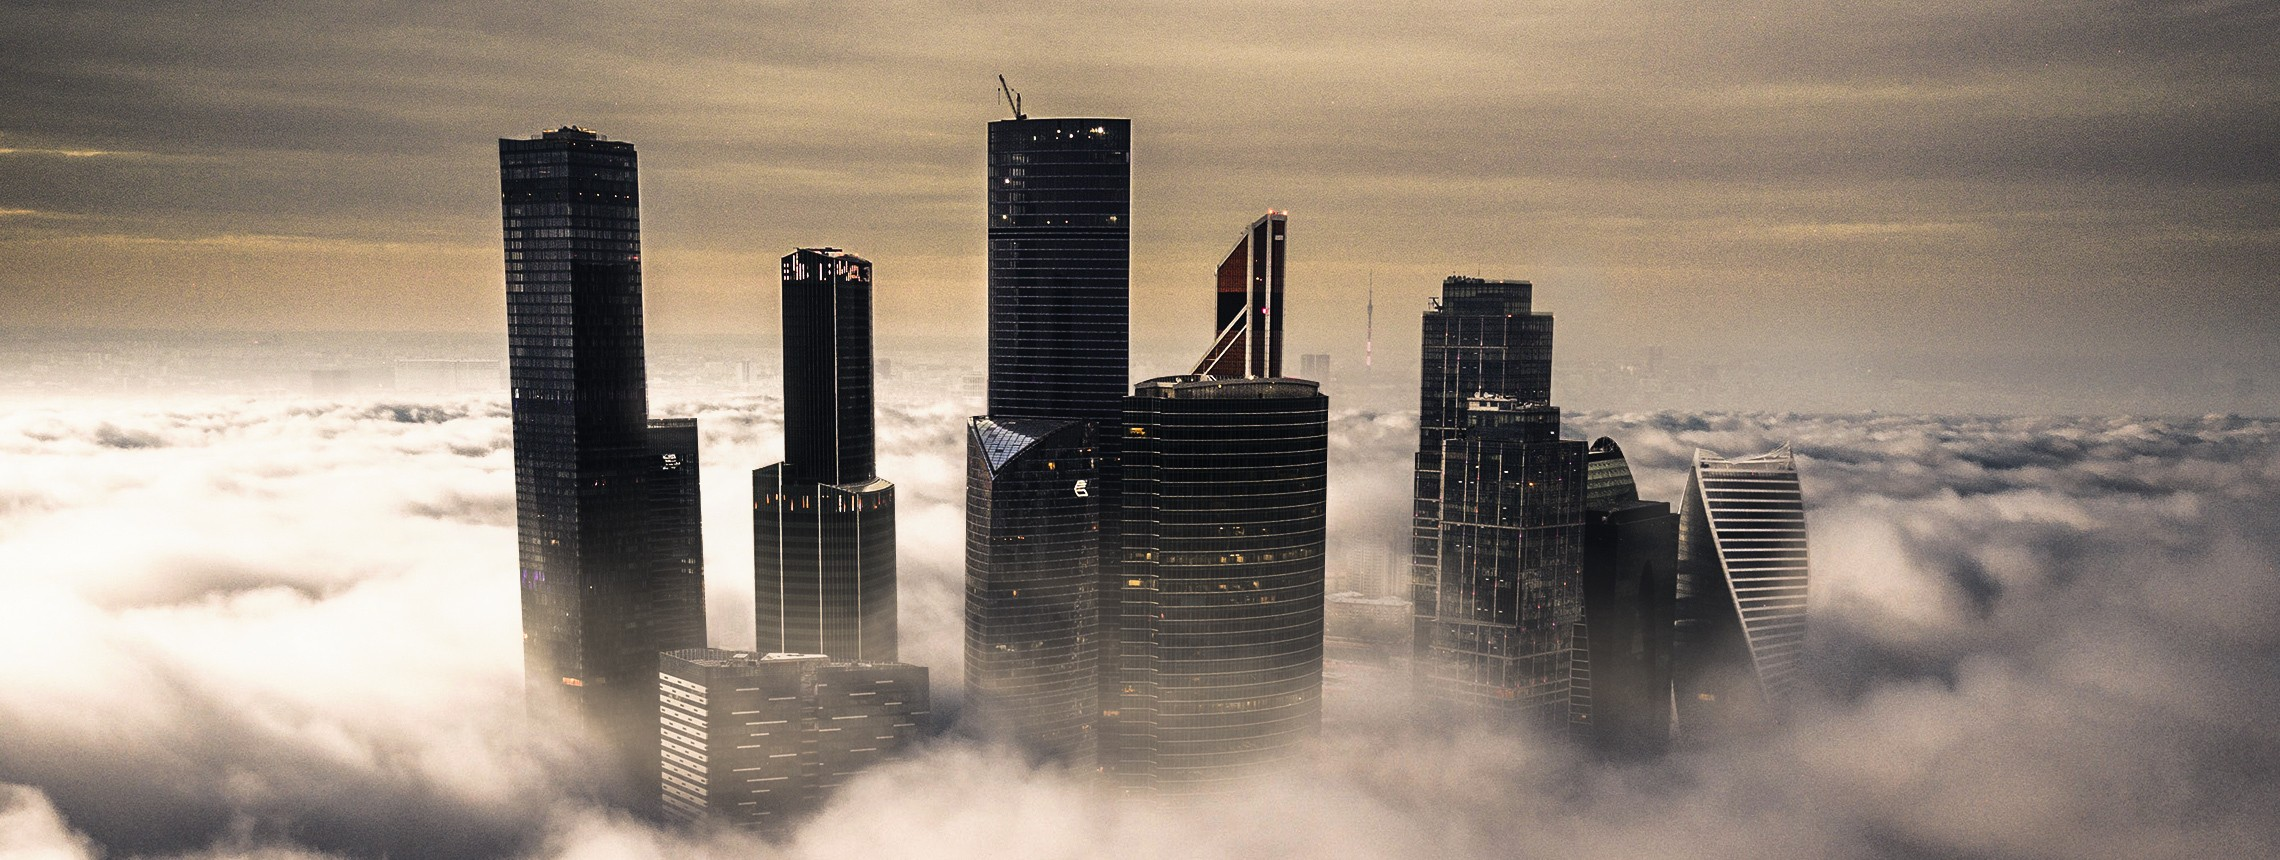 How to Create an Atmospheric Cityscape Bathed in Clouds